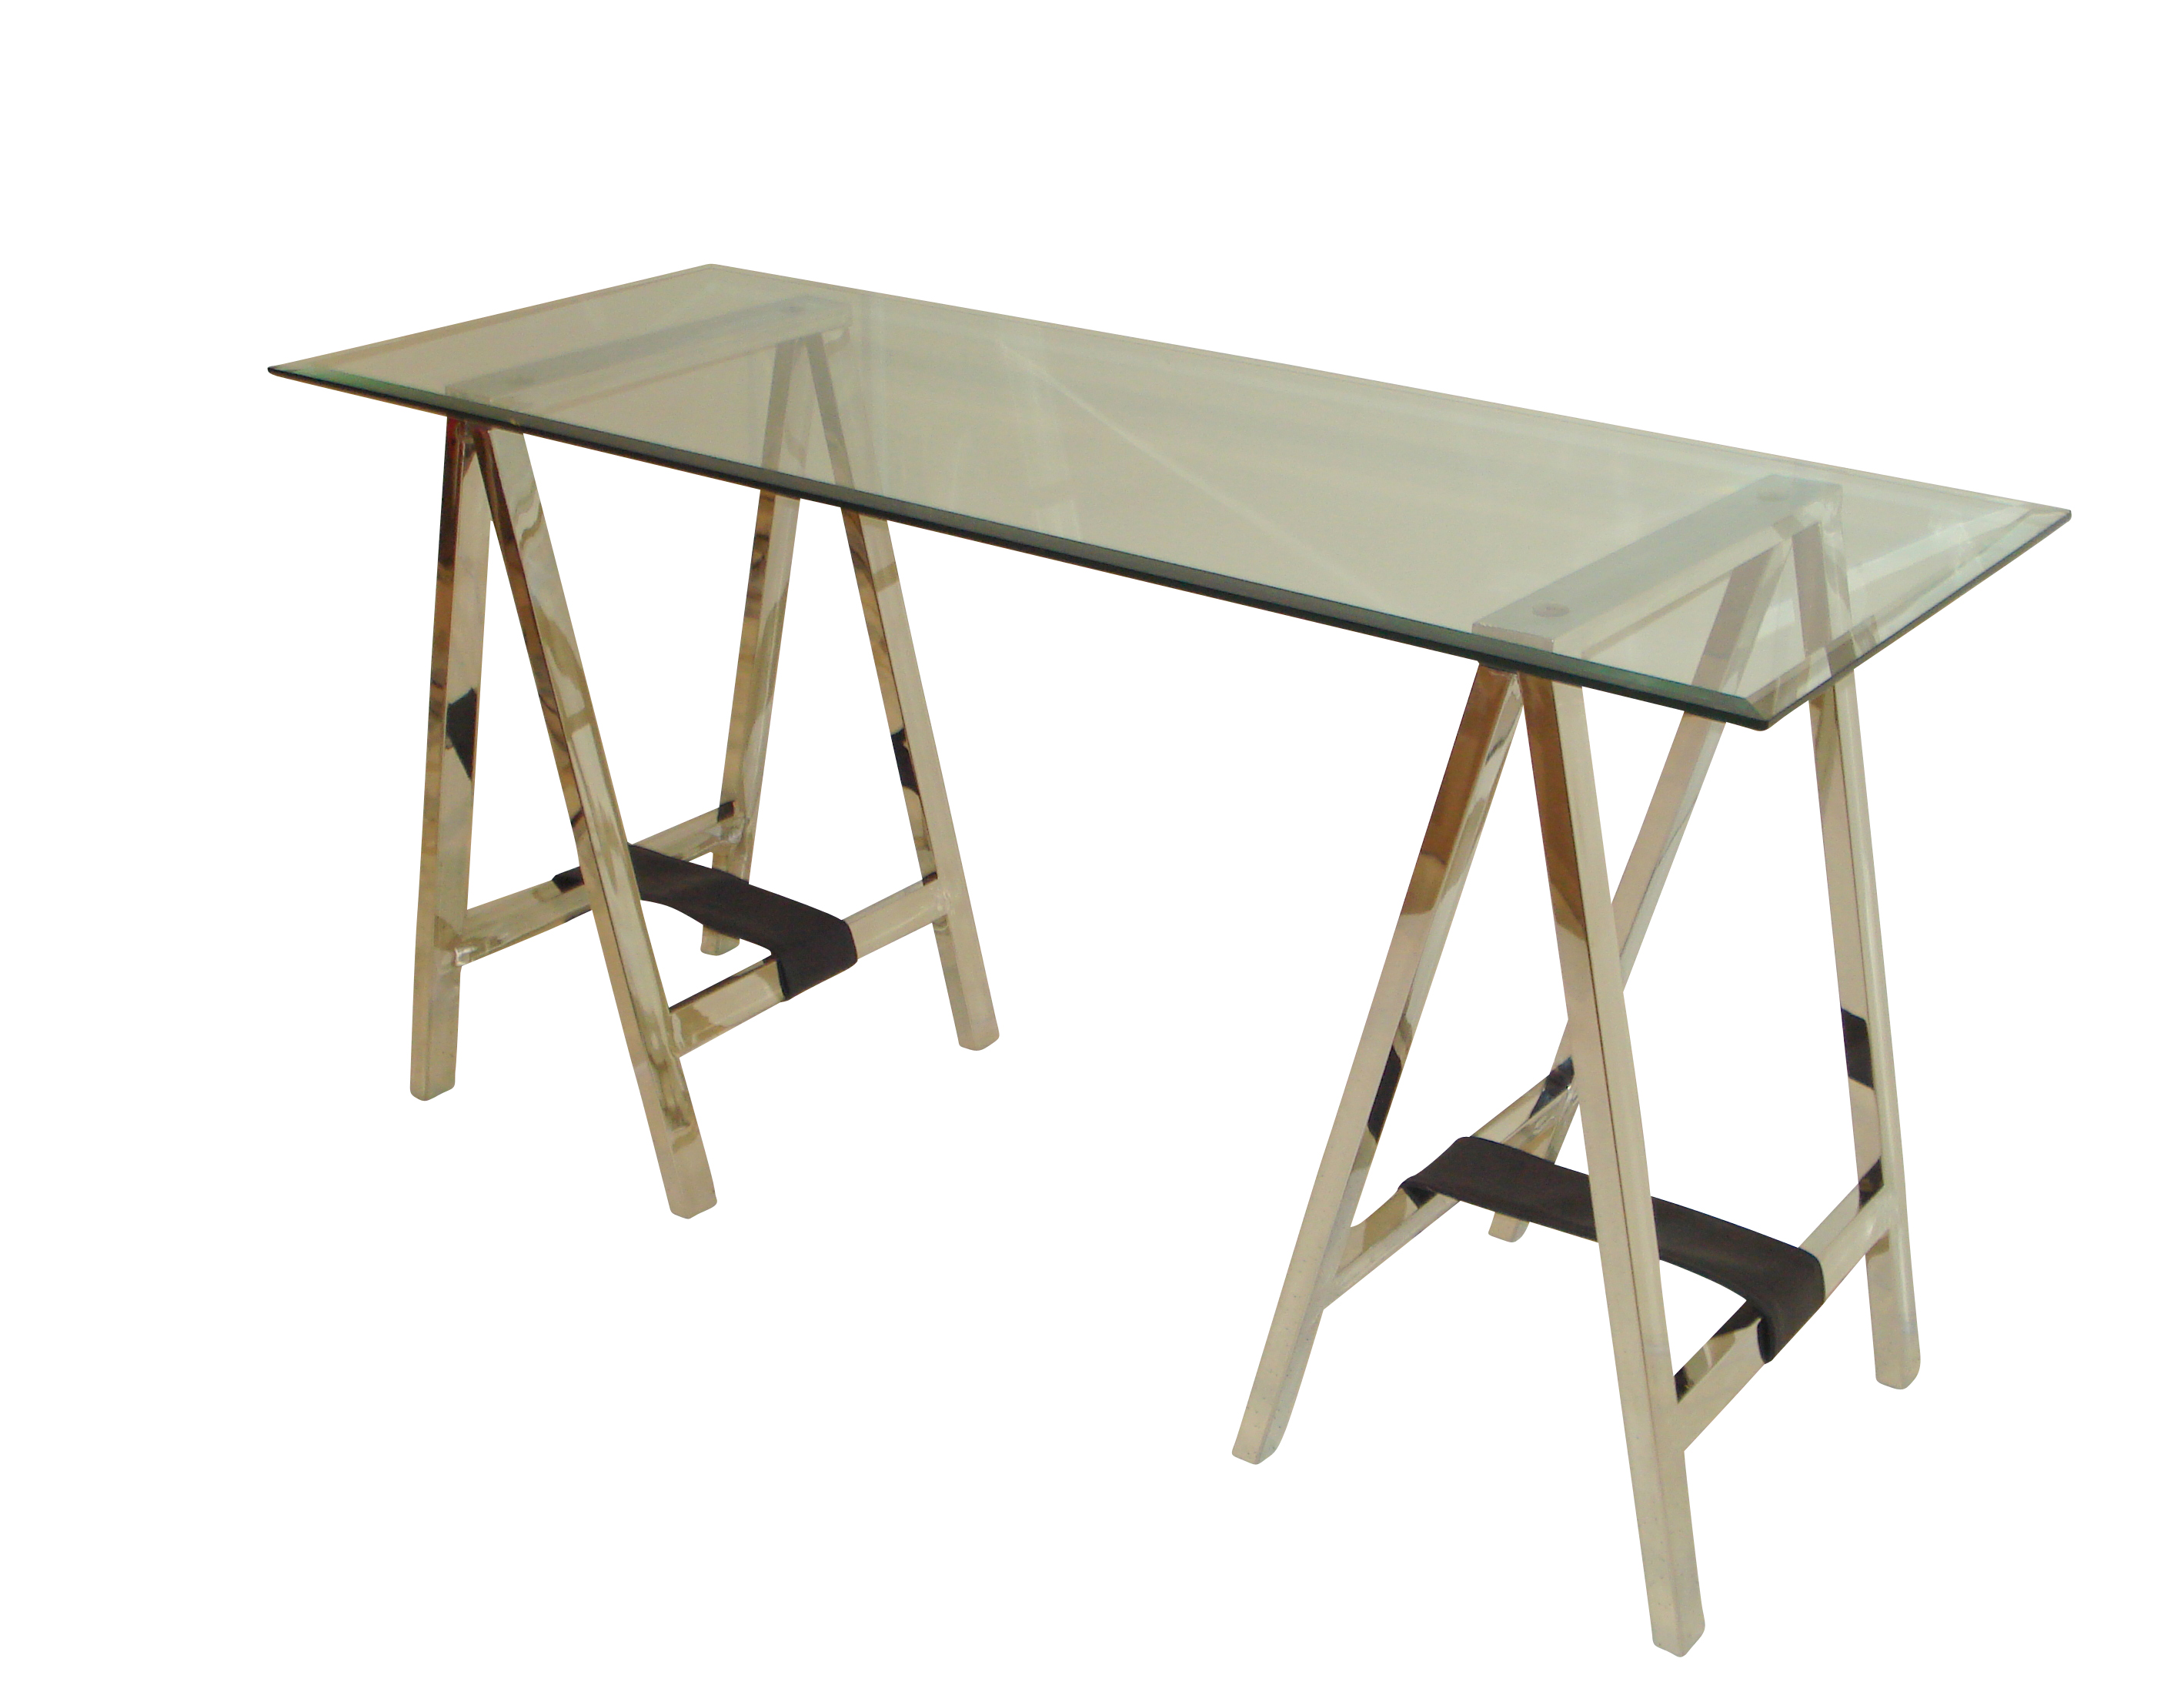 Stainless Steel Folding Trestle Table with Leather Strap